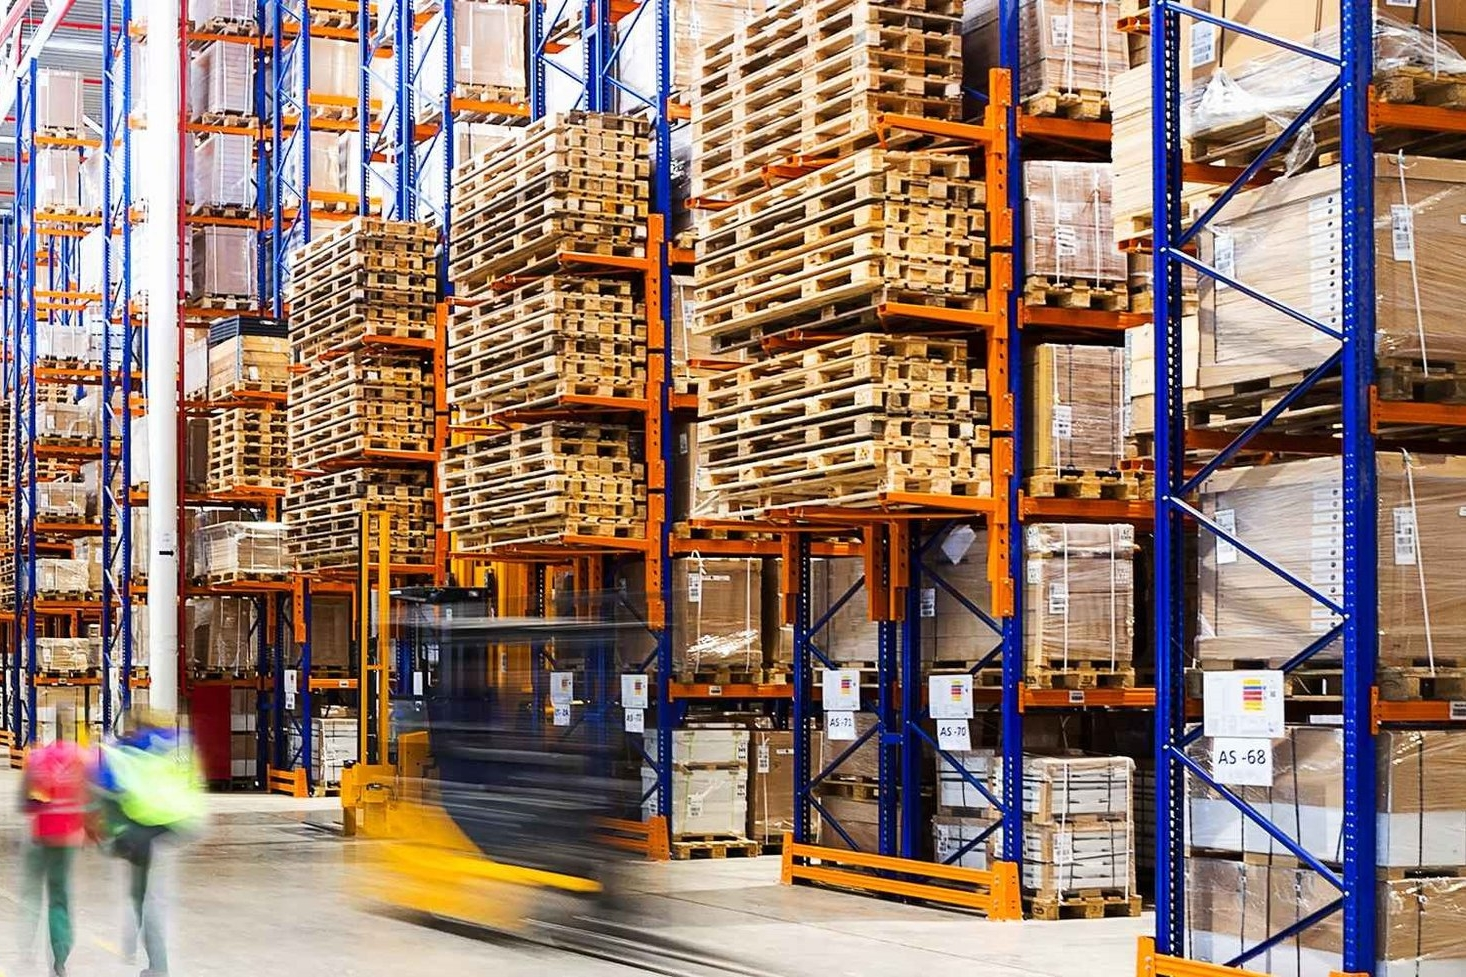 Expertlogistics - Rapid and responsive, we can manage even the most complex of logistical arrangements . As well as transport and warehousing, our capabilities extend to reprocessing and repackaging to deliver products effectively and compliantly to markets around the world.